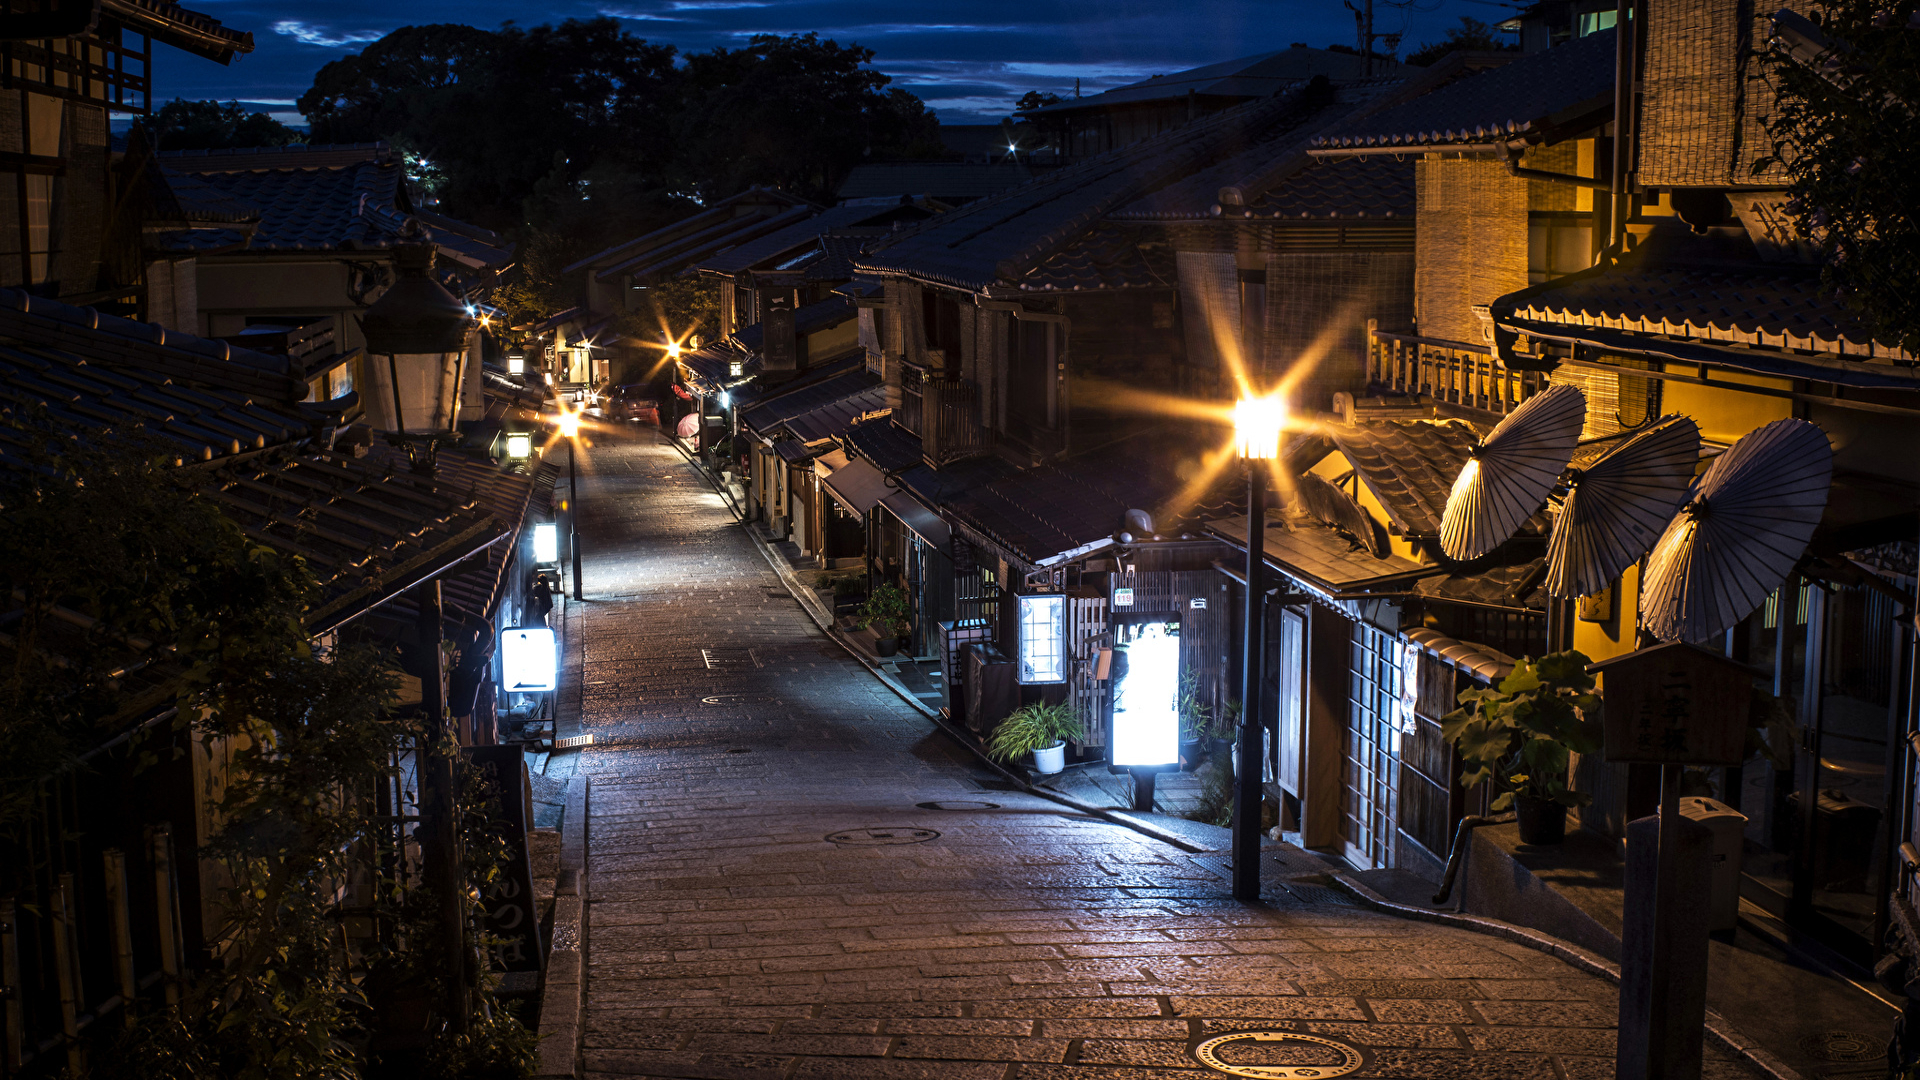 Kyoto-at-dusk-x-wallpaper-wp5208568